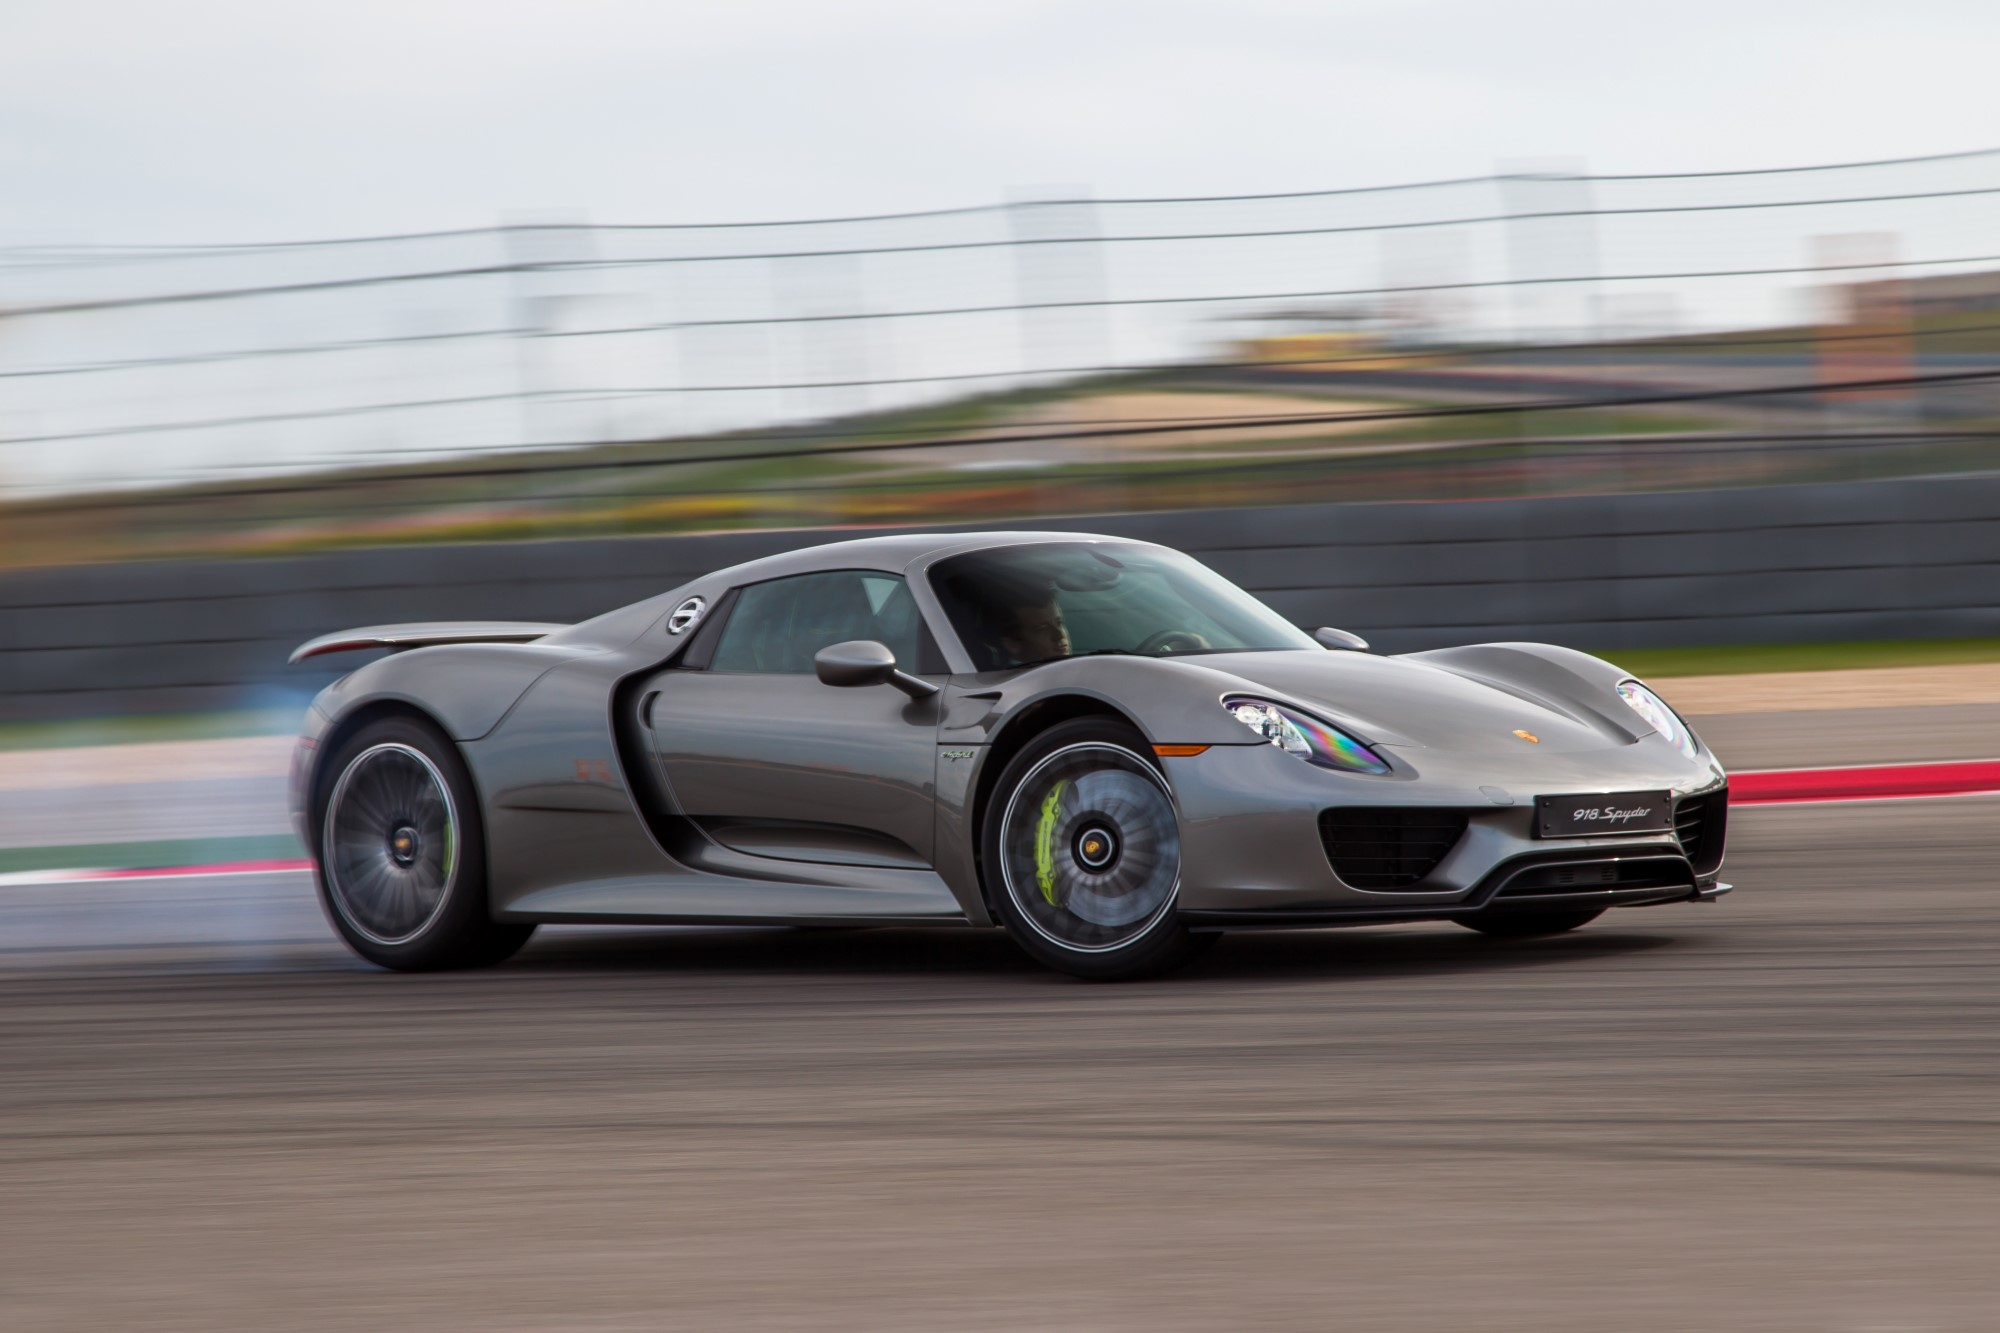 2015 Porsche 918 Spyder Best Car To Buy Nominee